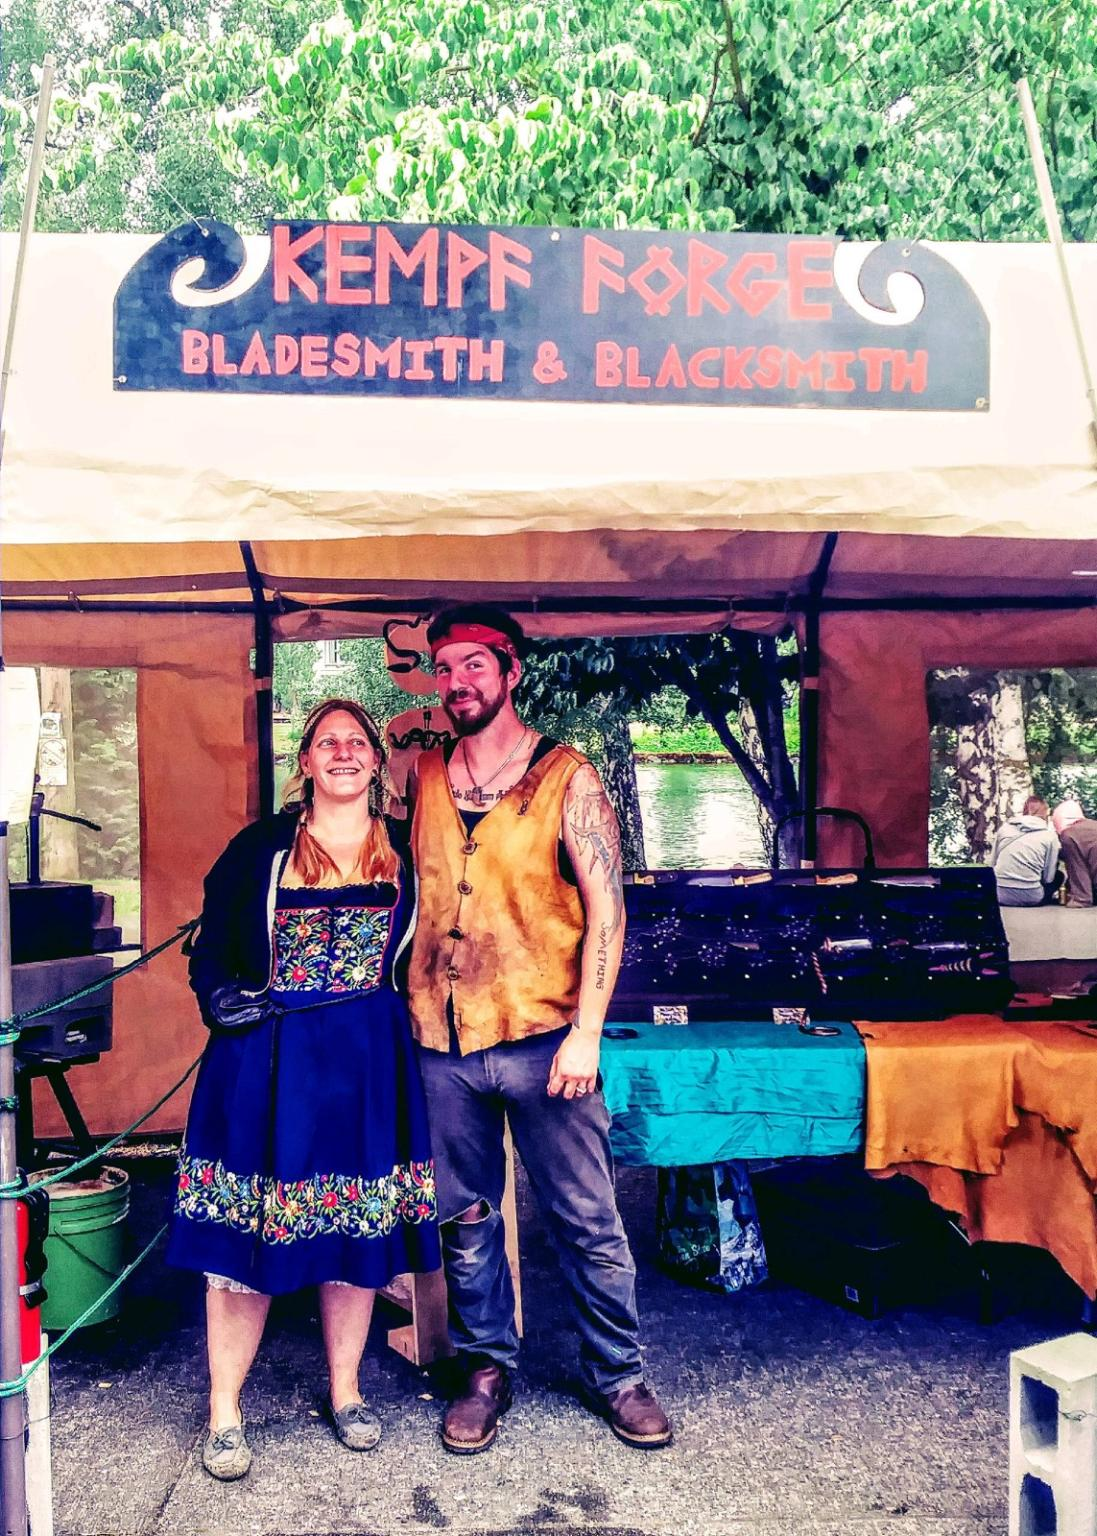 Myself and my Lovely Wife Sami at the Fremont Solstice festival in Seattle.